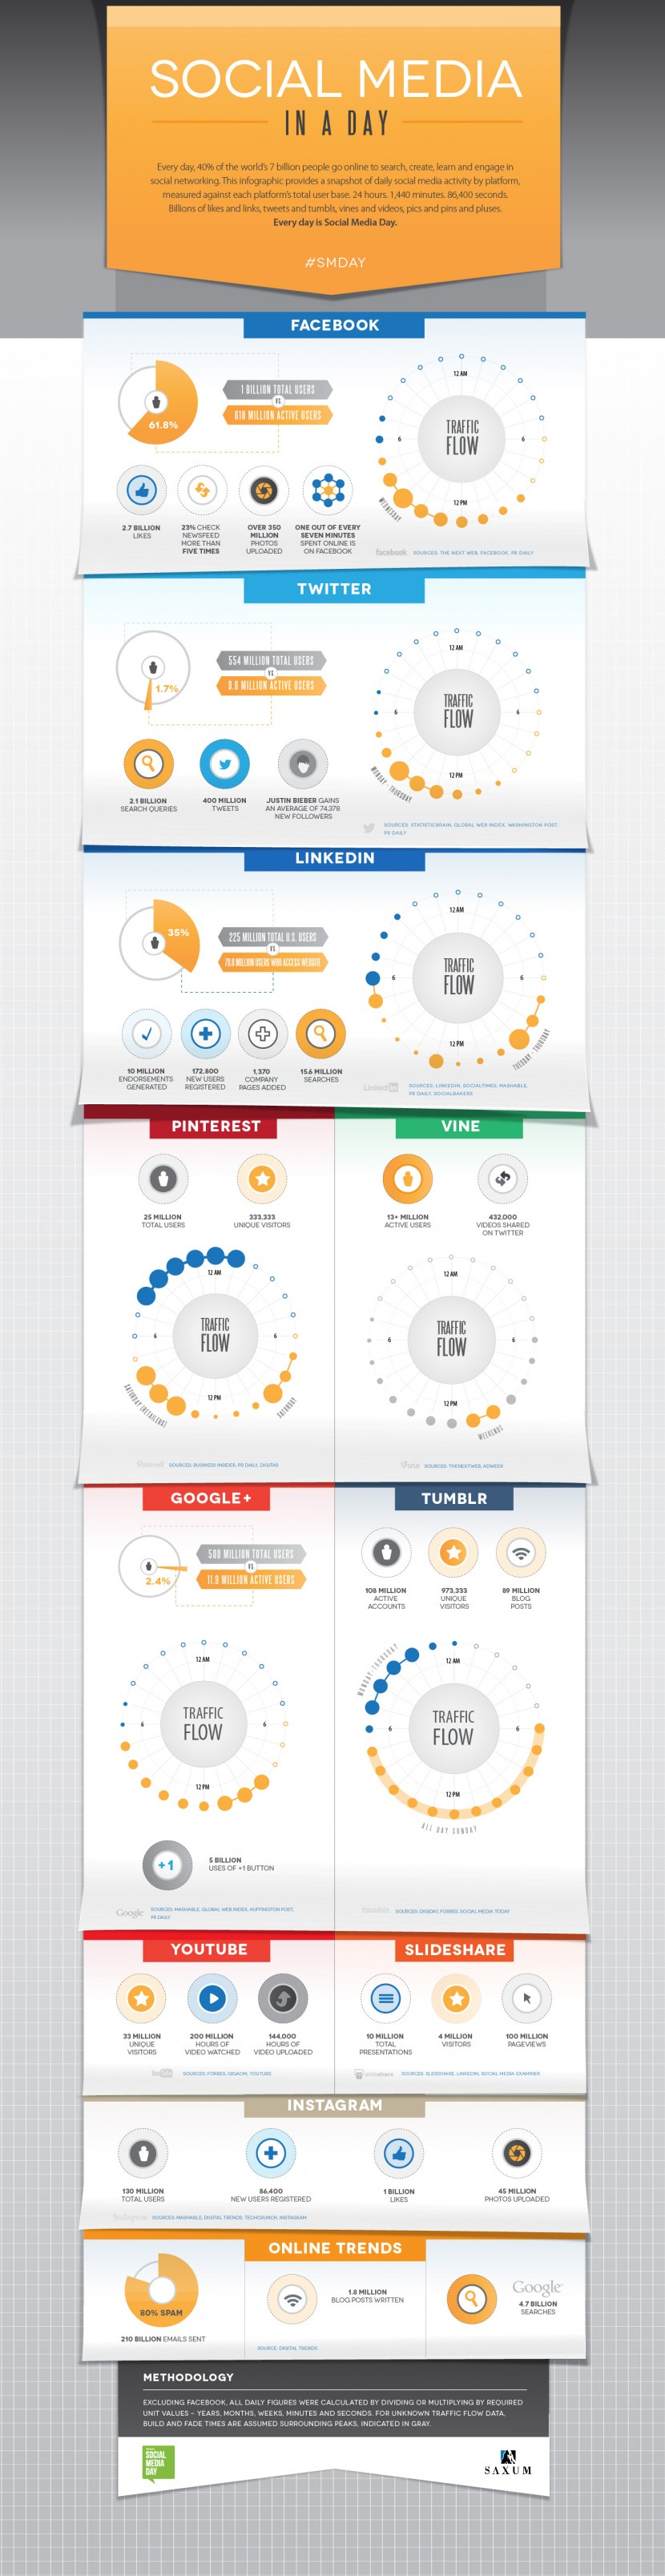 Infographie 14 - social-media-a-day-infographic